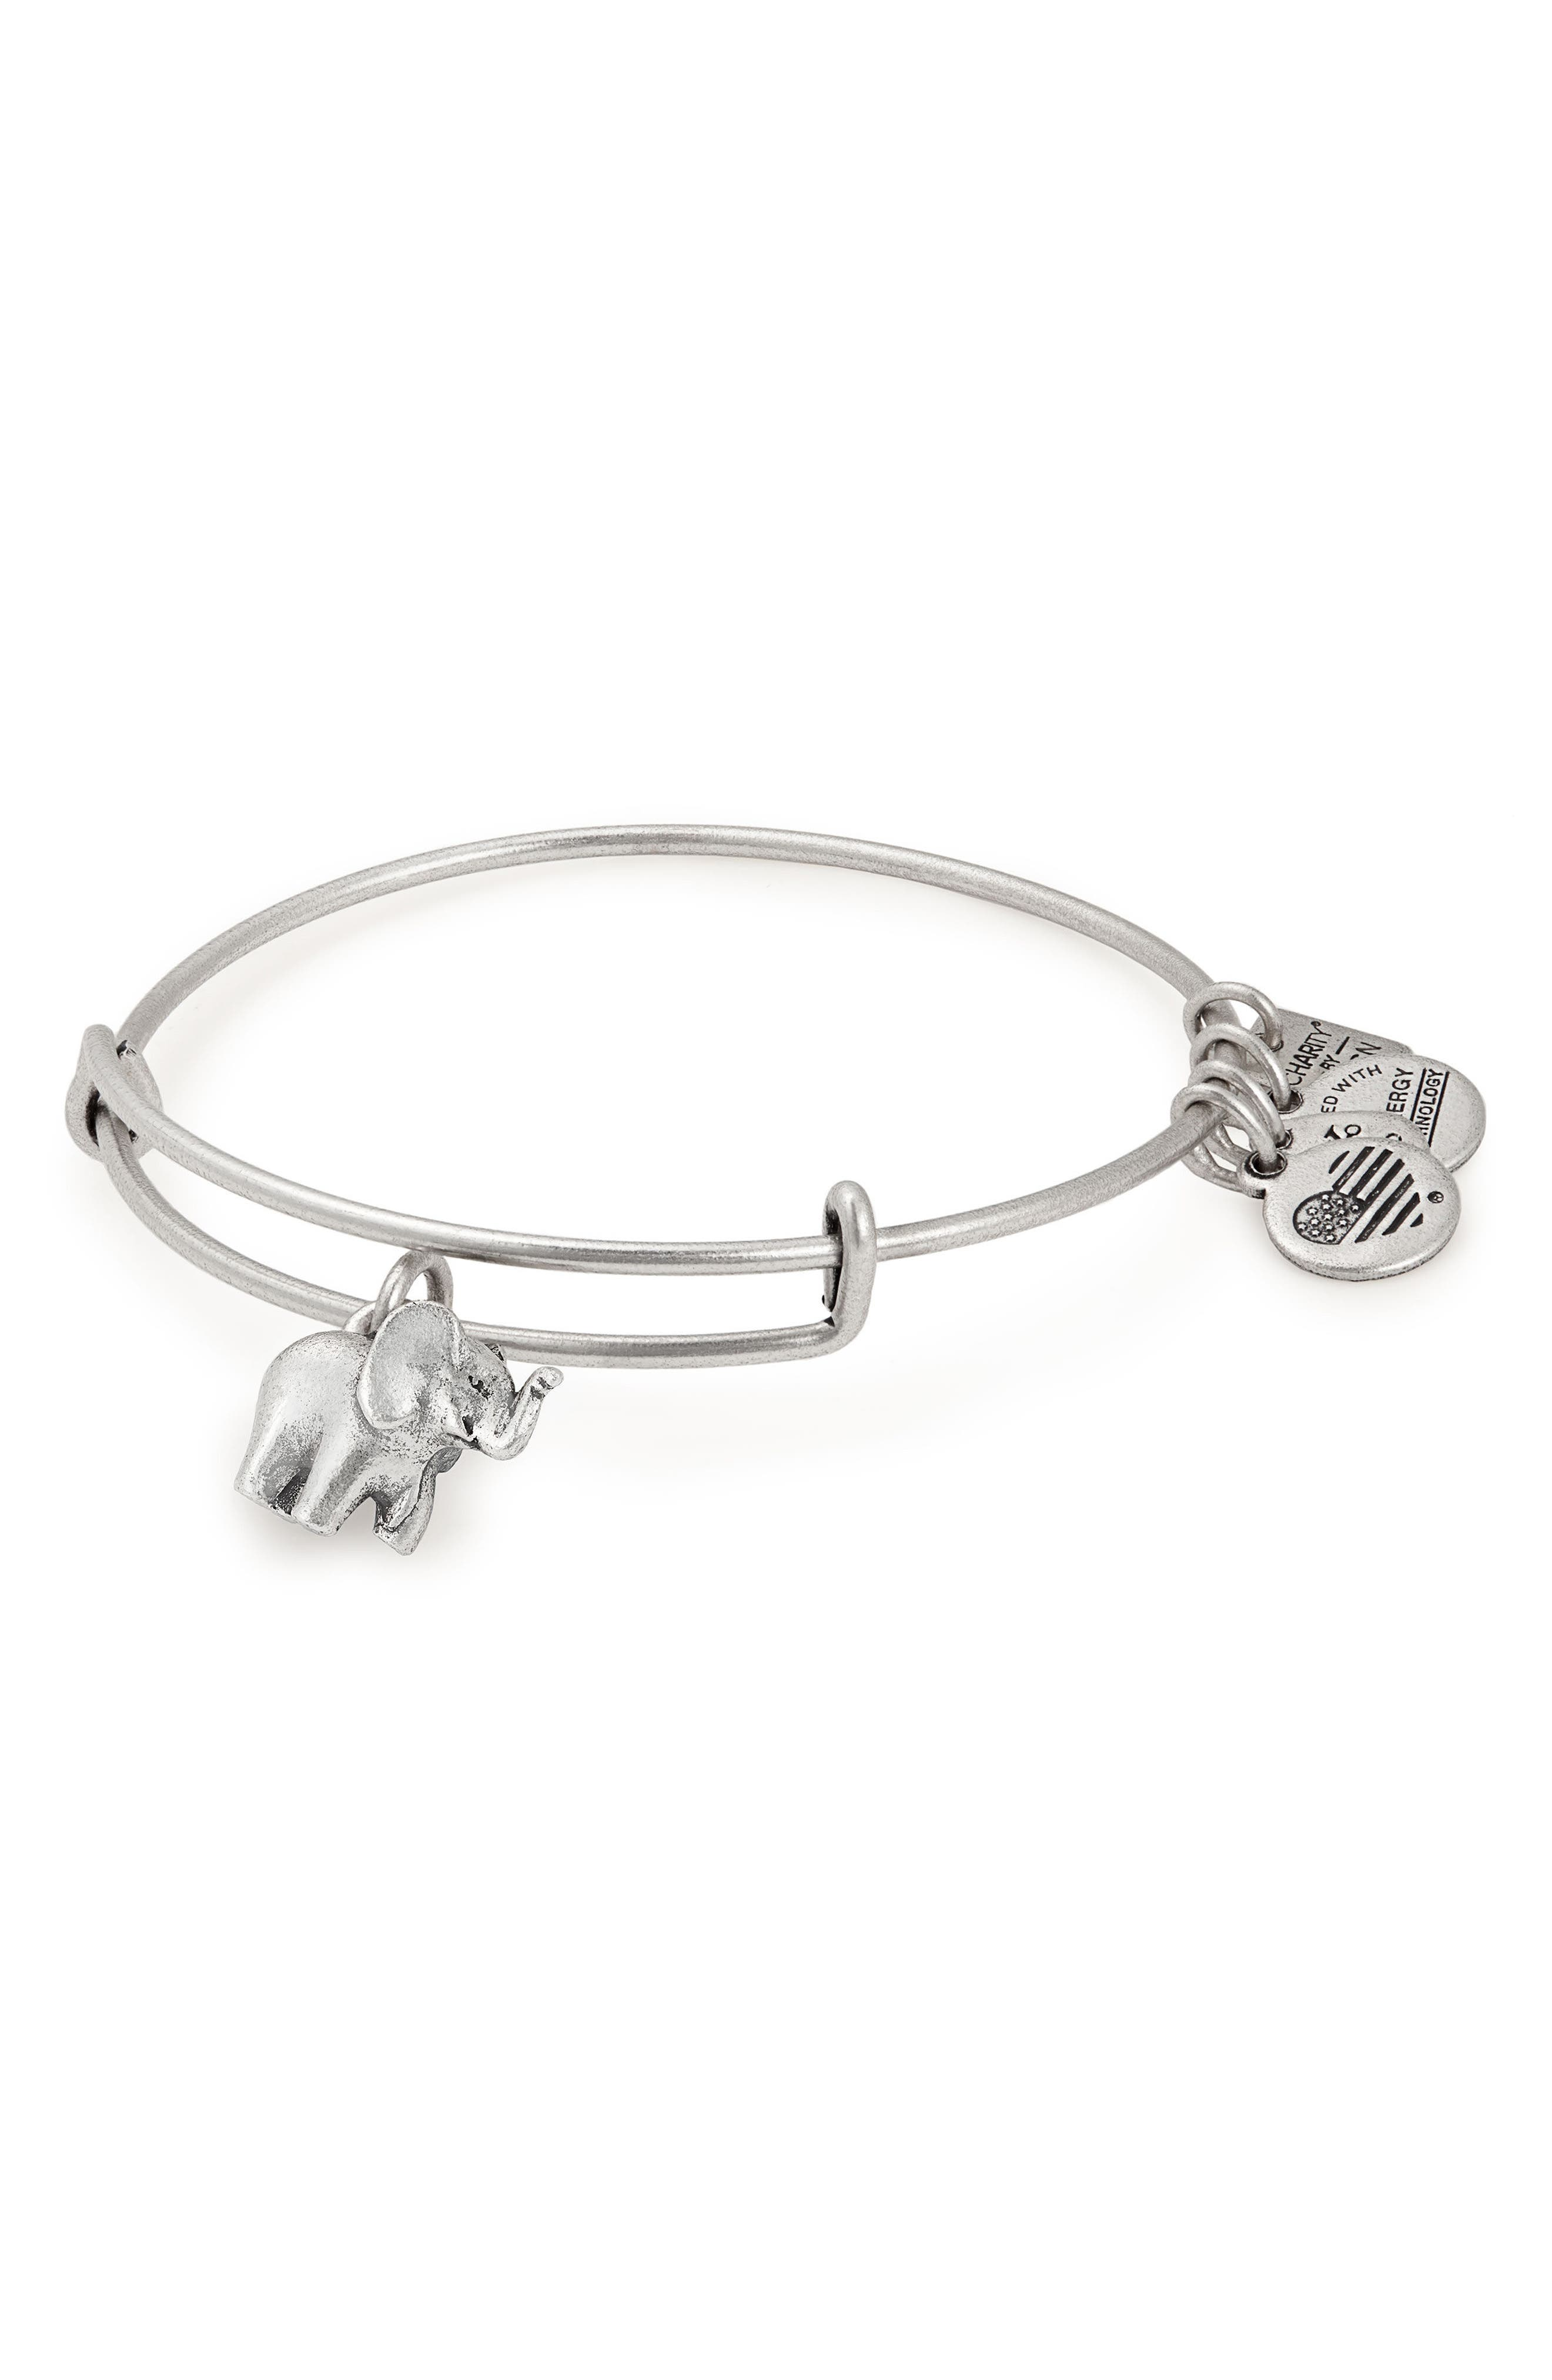 Charity by Design Elephant II Adjustable Bangle,                             Alternate thumbnail 2, color,                             SILVER